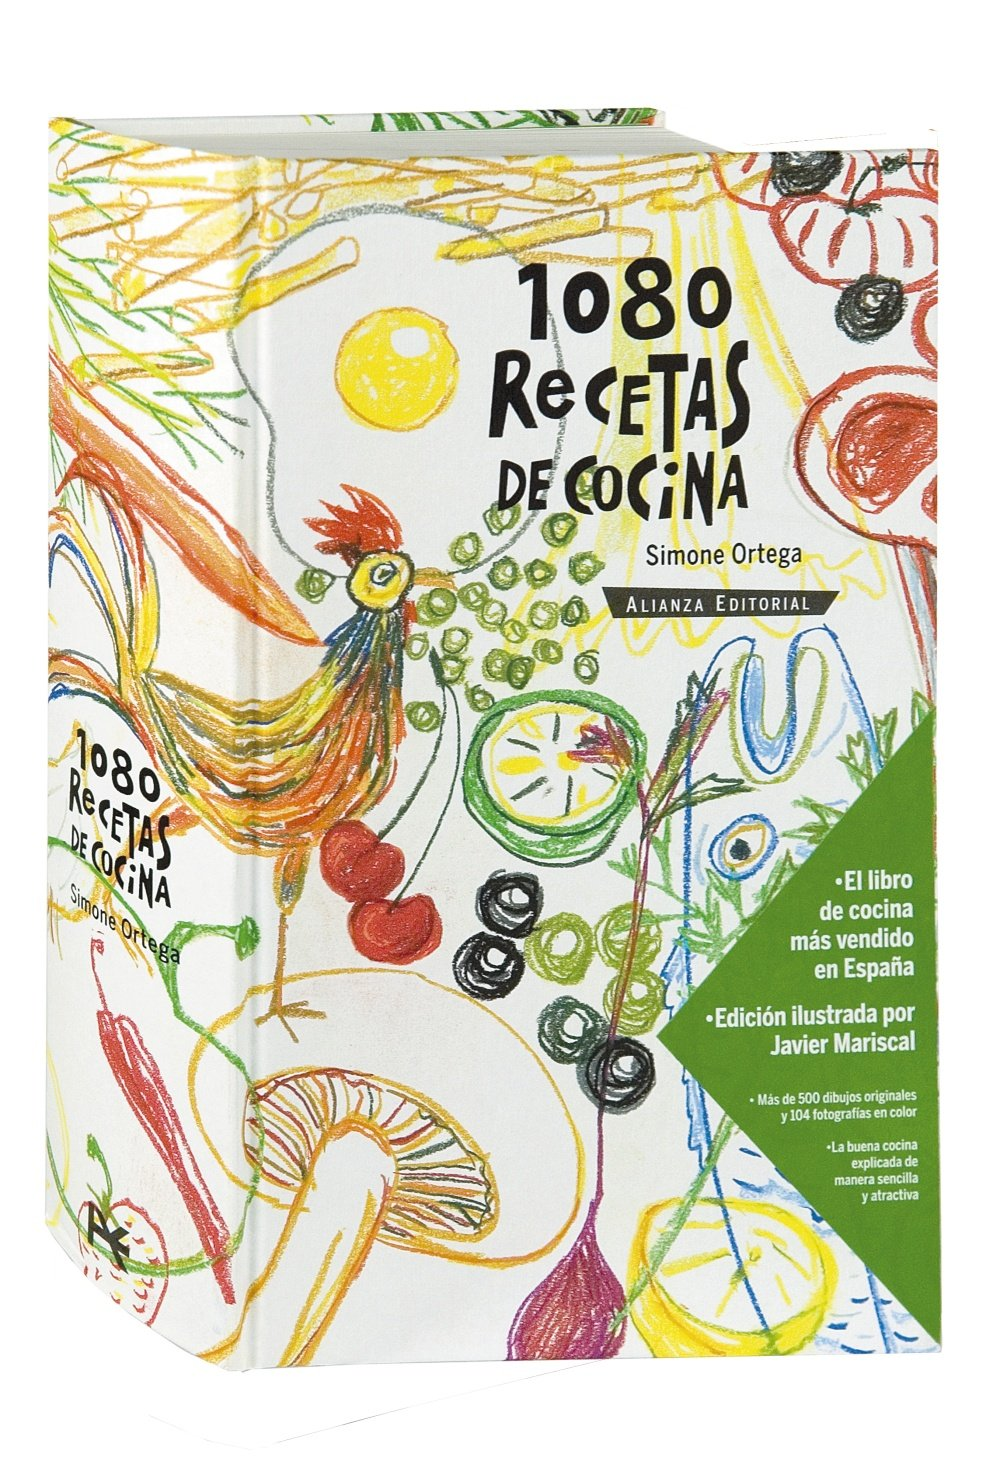 1080 recetas de cocina / 1080 Cooking Recipes (Spanish Edition): Simone  Ortega, Javier Mariscal: 9788420652603: Amazon.com: Books